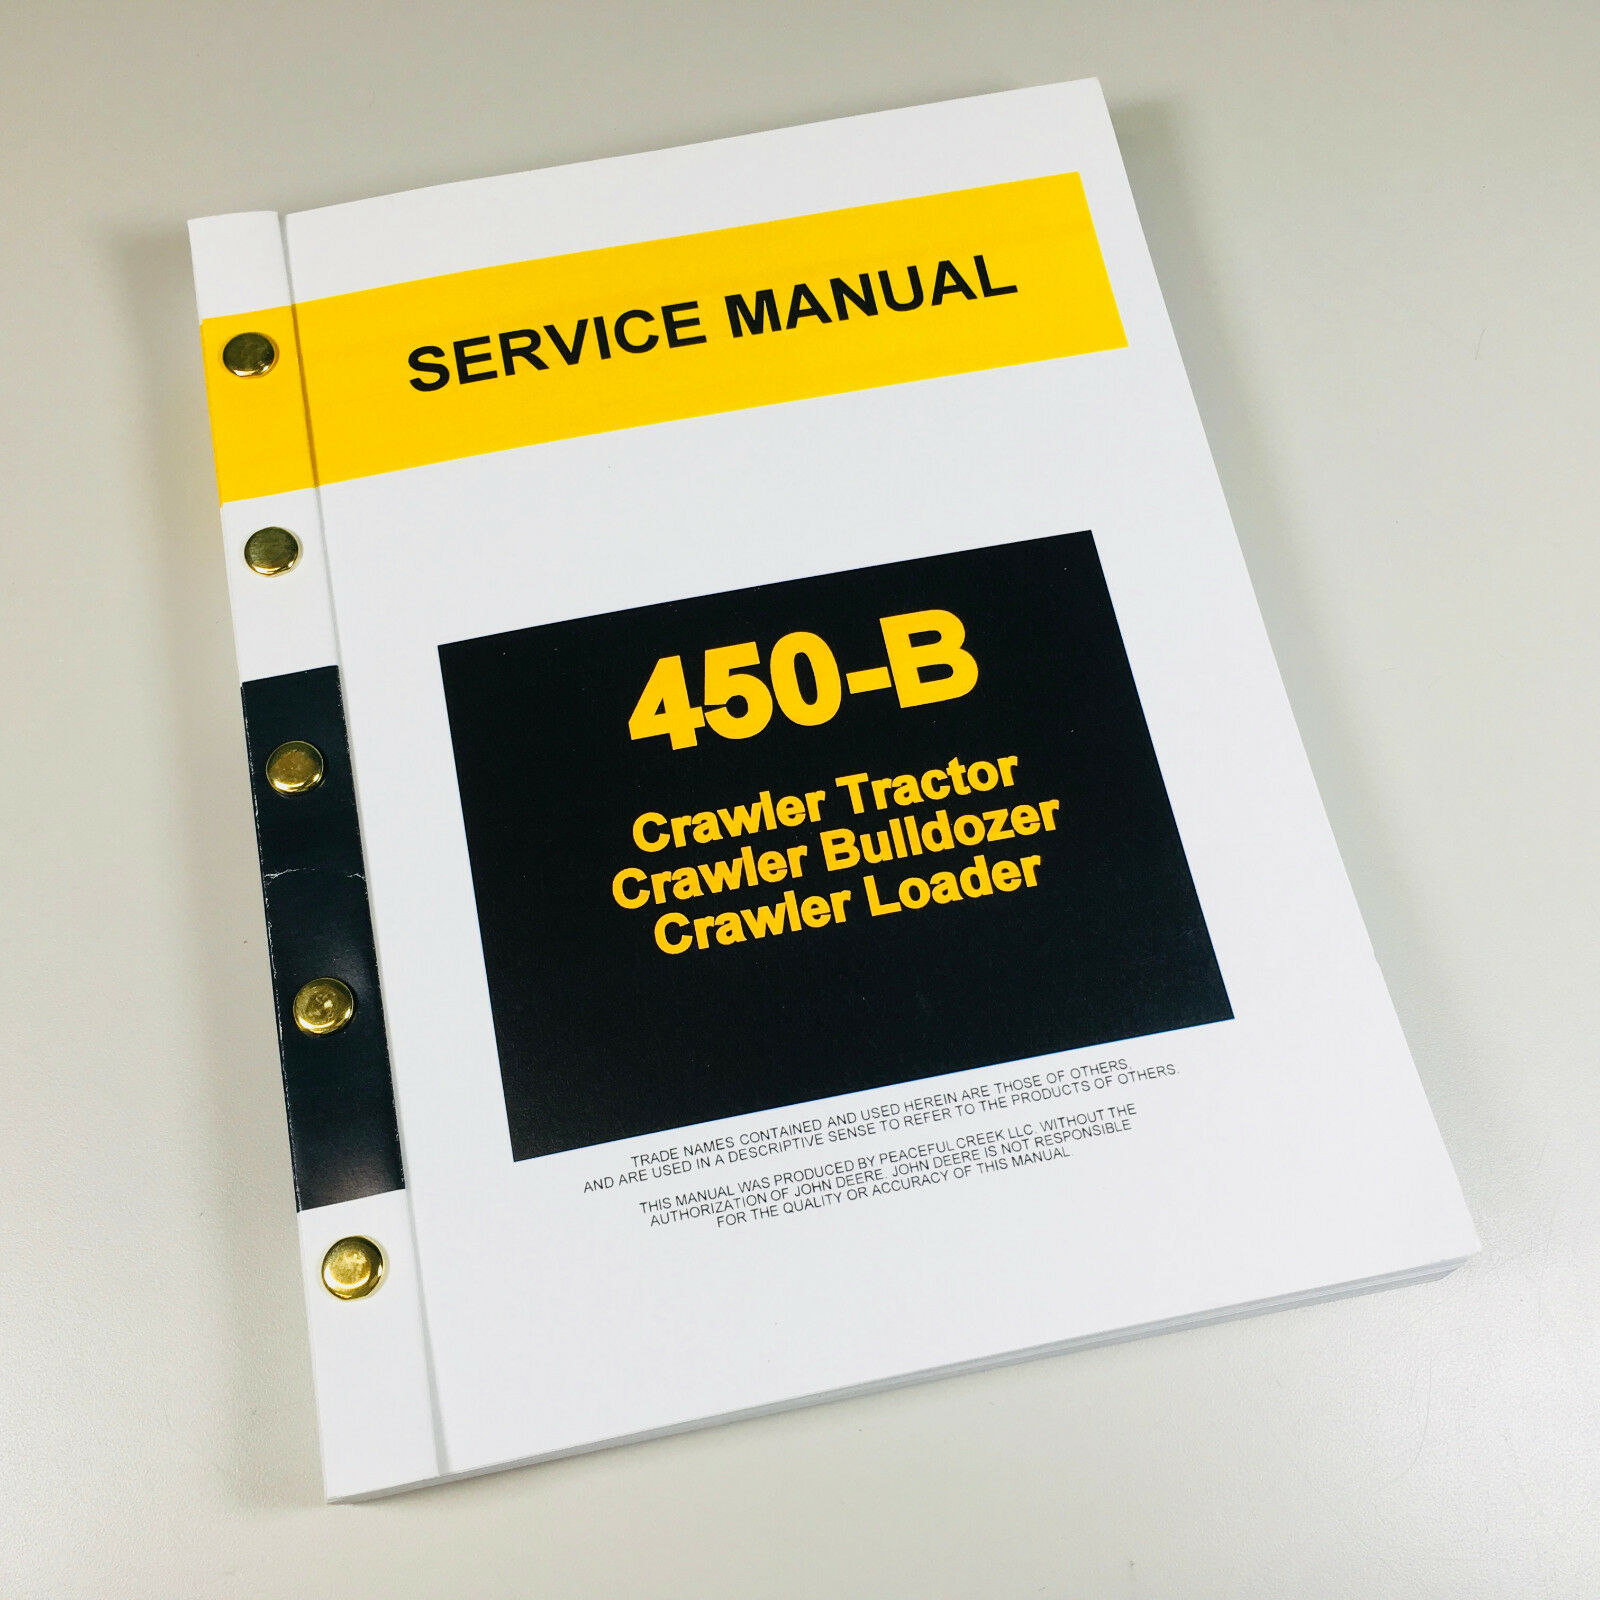 Crawler Dozers and Loaders. Complete Service Manual